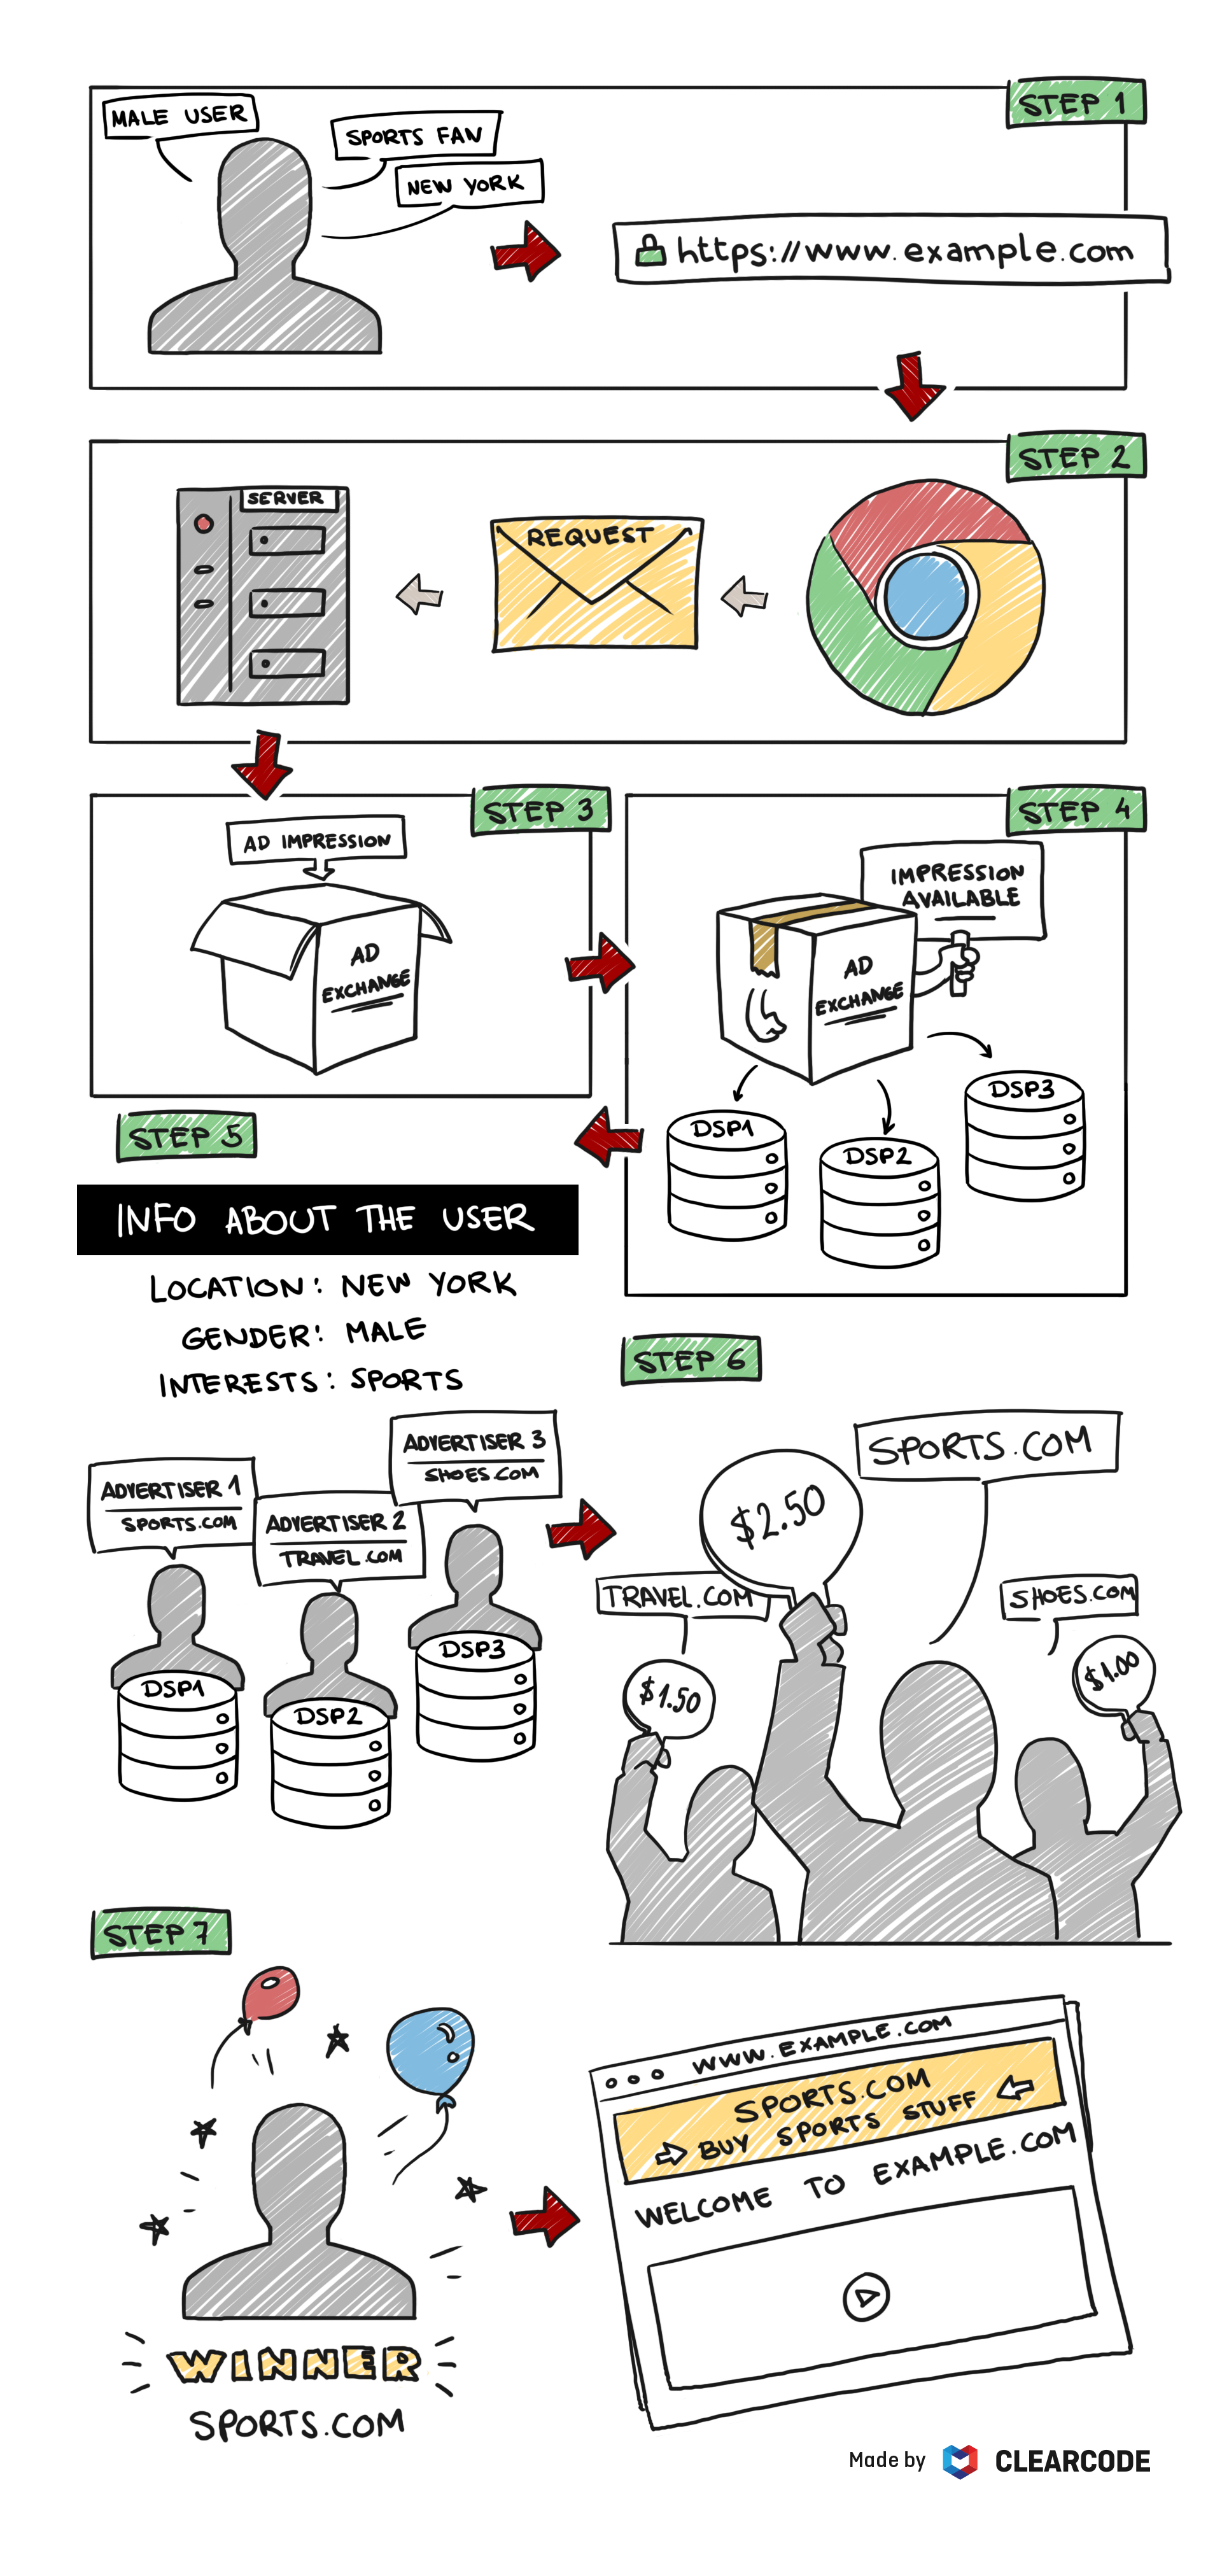 the real-time bidding process